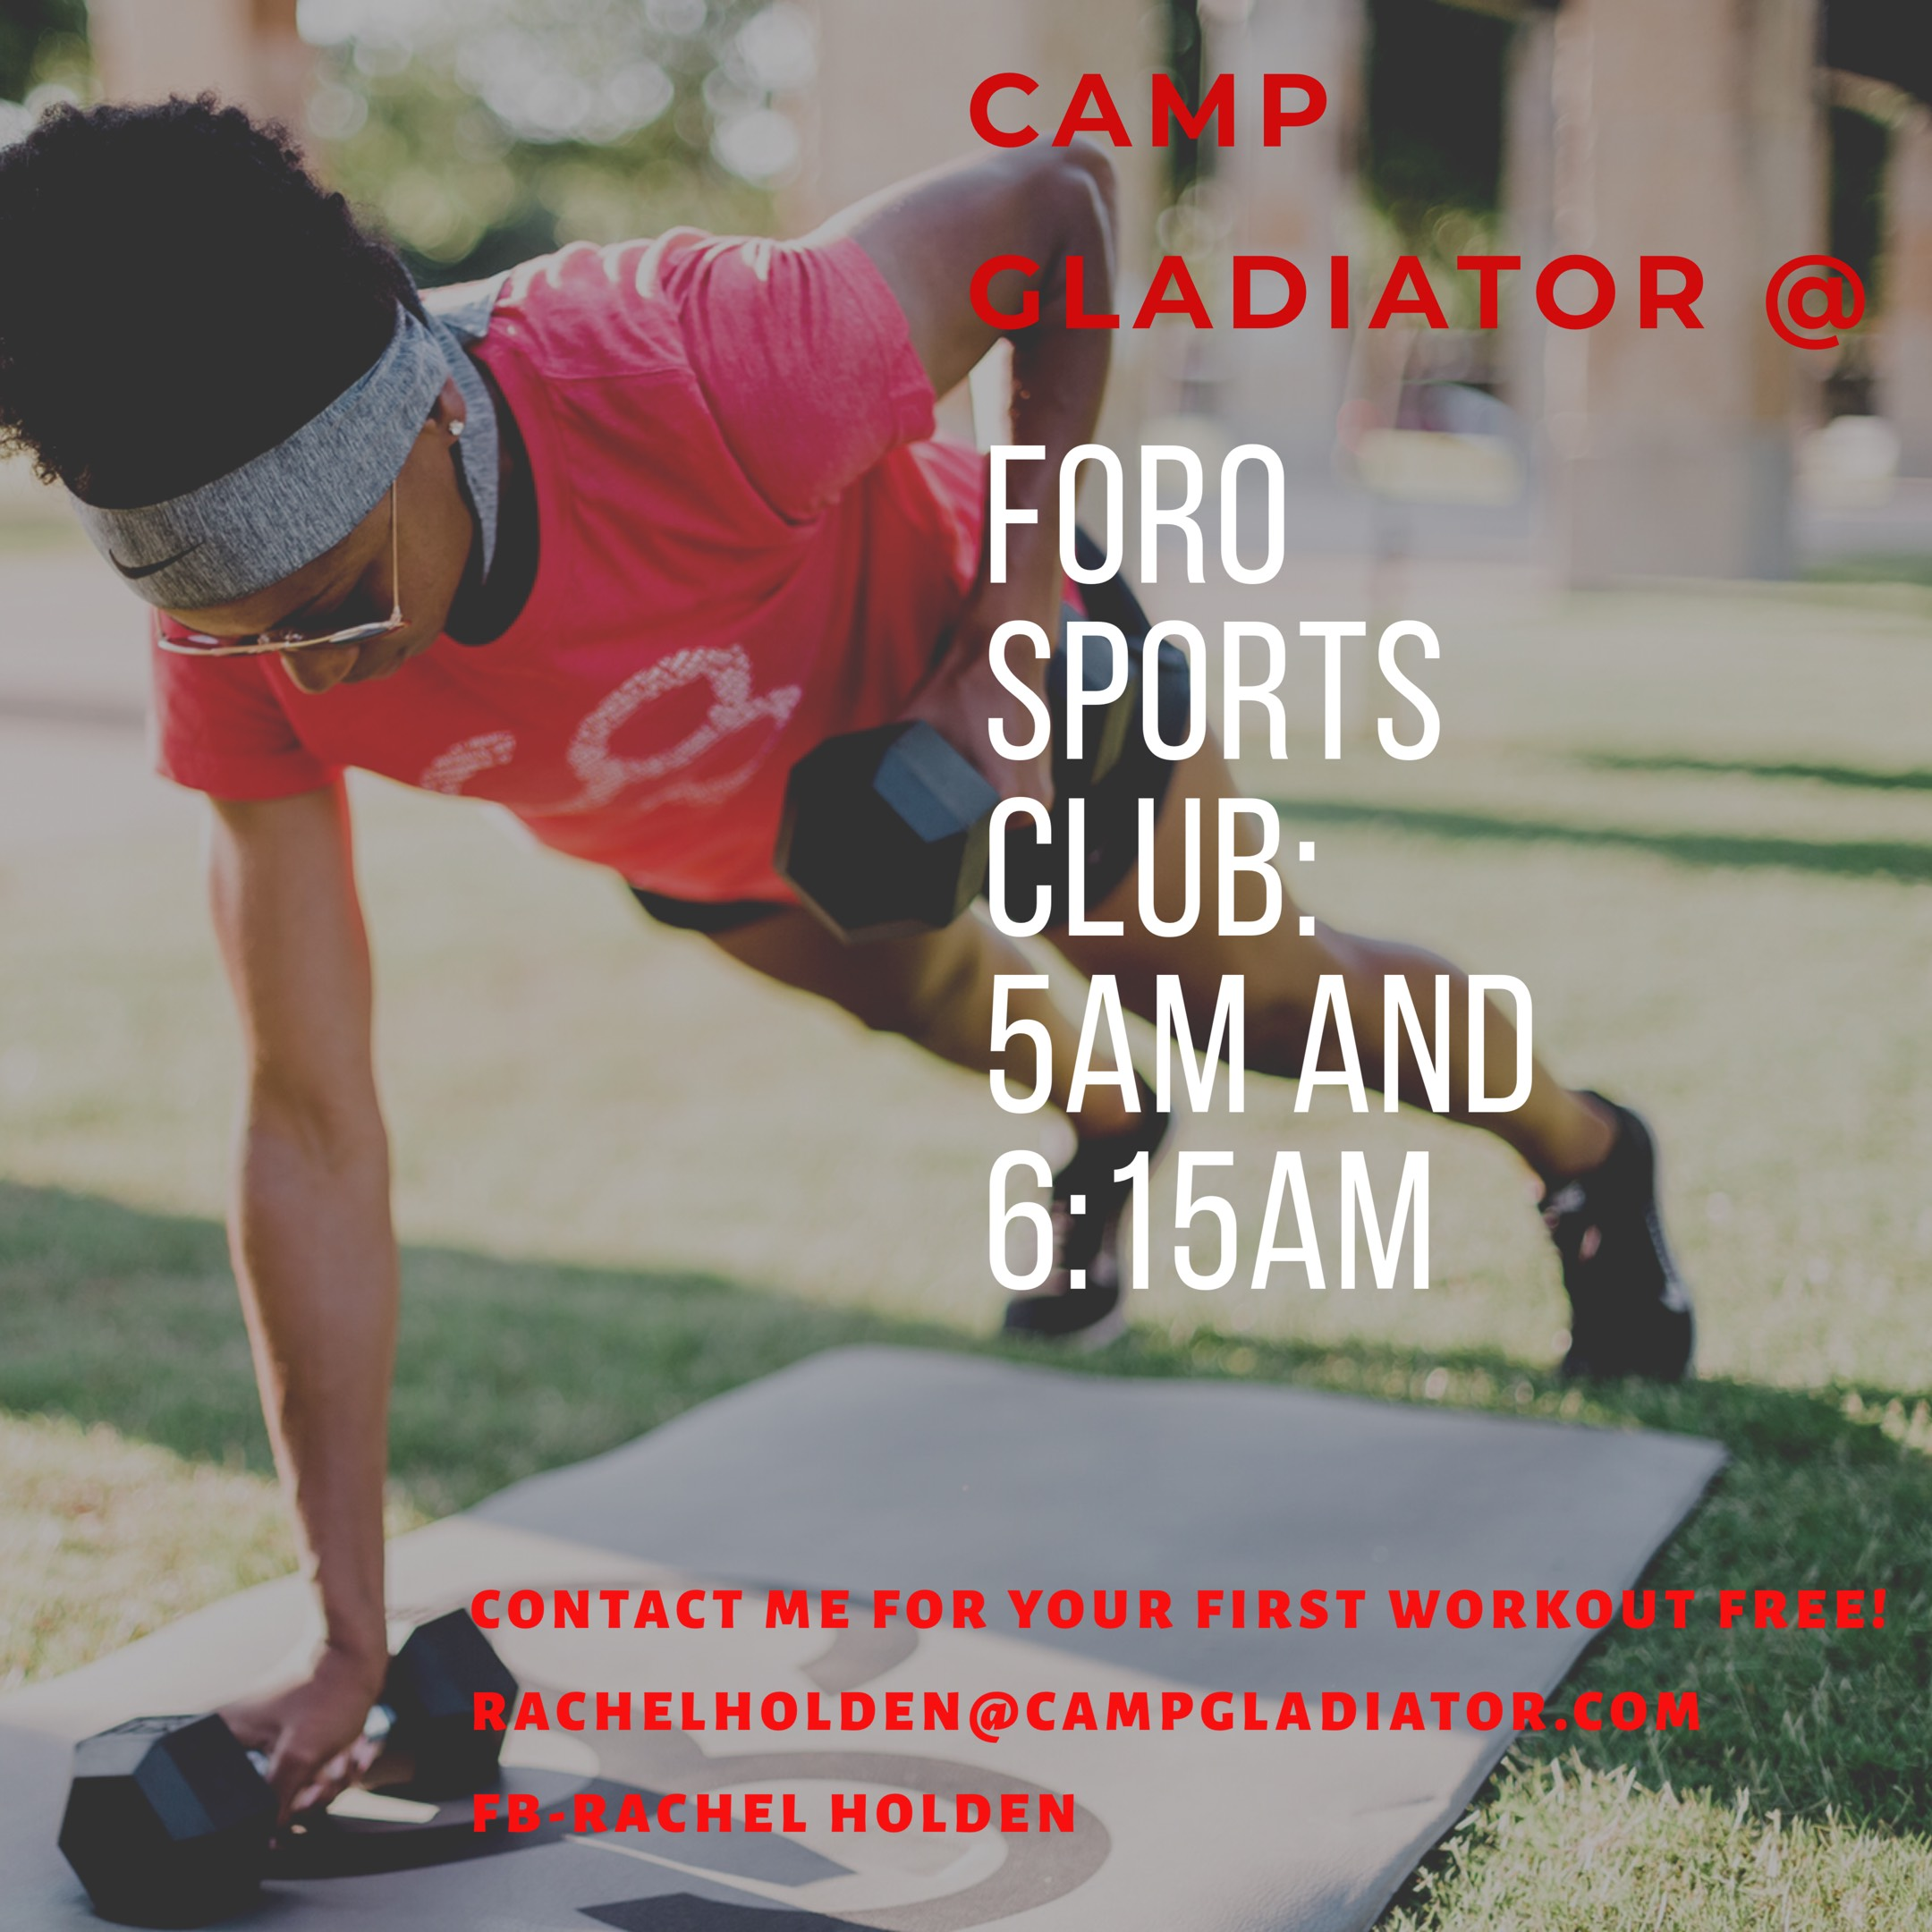 """Camp Gladiator - """"Come try out your first Camp Gladiator workout for free, or sign up for 4 weeks!""""DAYS: Monday, Tuesday, and ThursdayTIME: 5 AM and 6:15 AMWHERE: TOP of the Parking garage across from Foro Sports clubWhat to bring: Water, dumbbells (10lb or greater), and an outdoor fitness mat.***Mat and dumbbells will be provided for your first workout***Email, call, or text Rachel Holden for more details and any questions.Email: rachelholden@campgladiator.comPhone: 214-686-5136"""